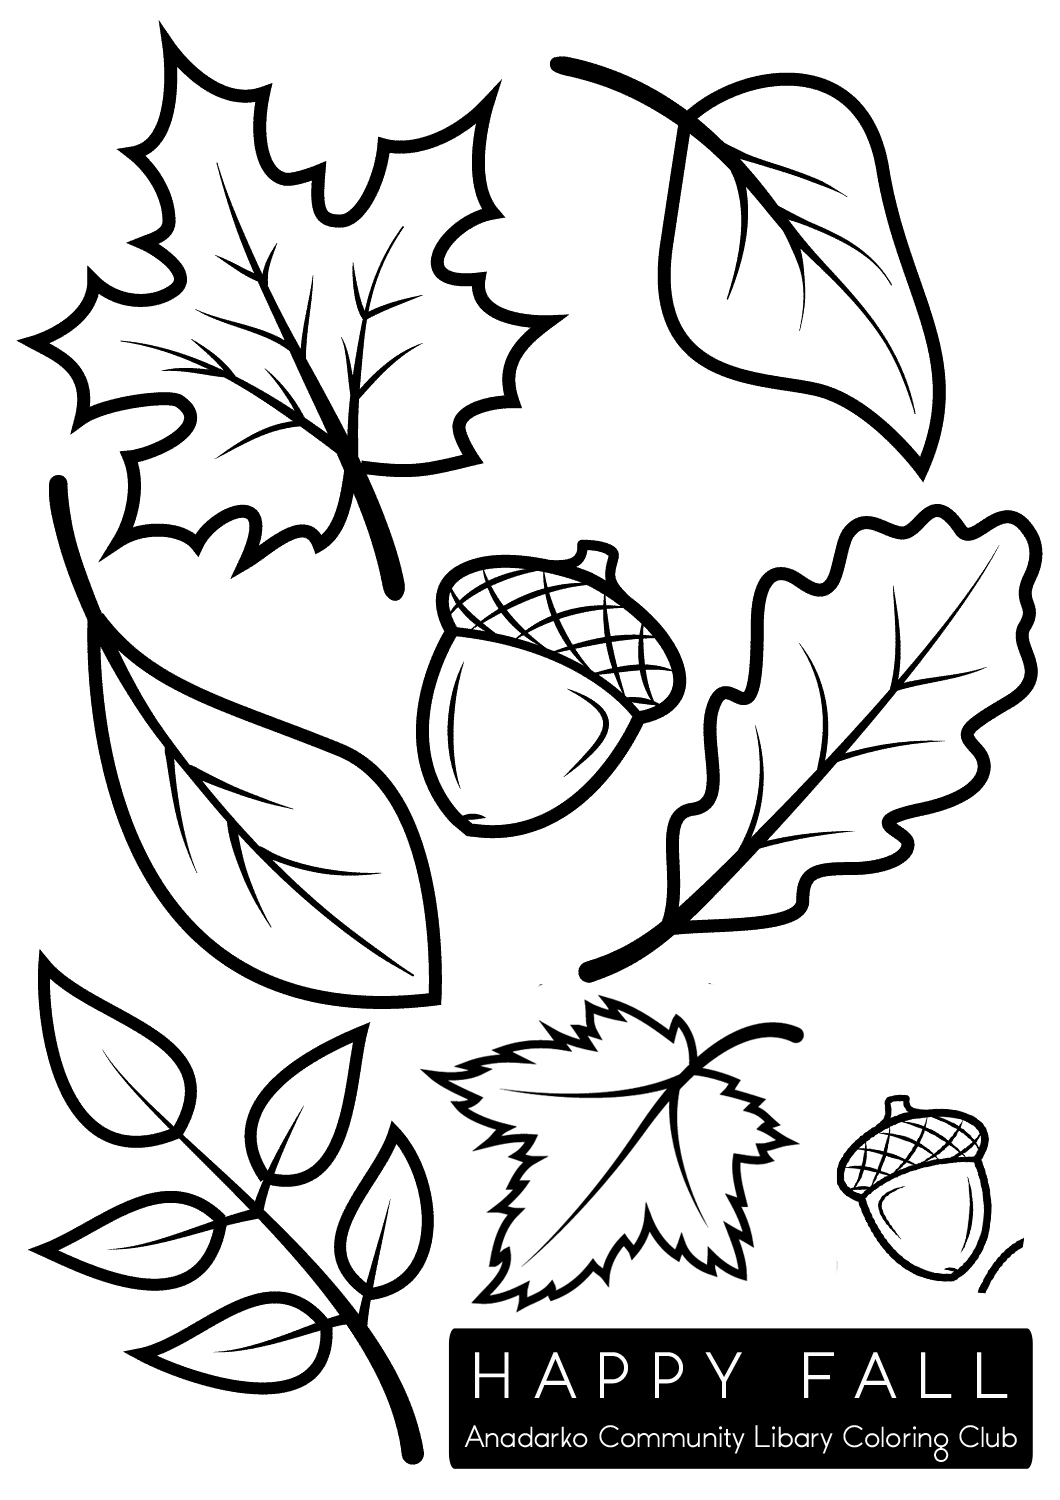 autumn leaves pictures to colour fall leaves picture fall leaves coloring page colour to autumn pictures leaves